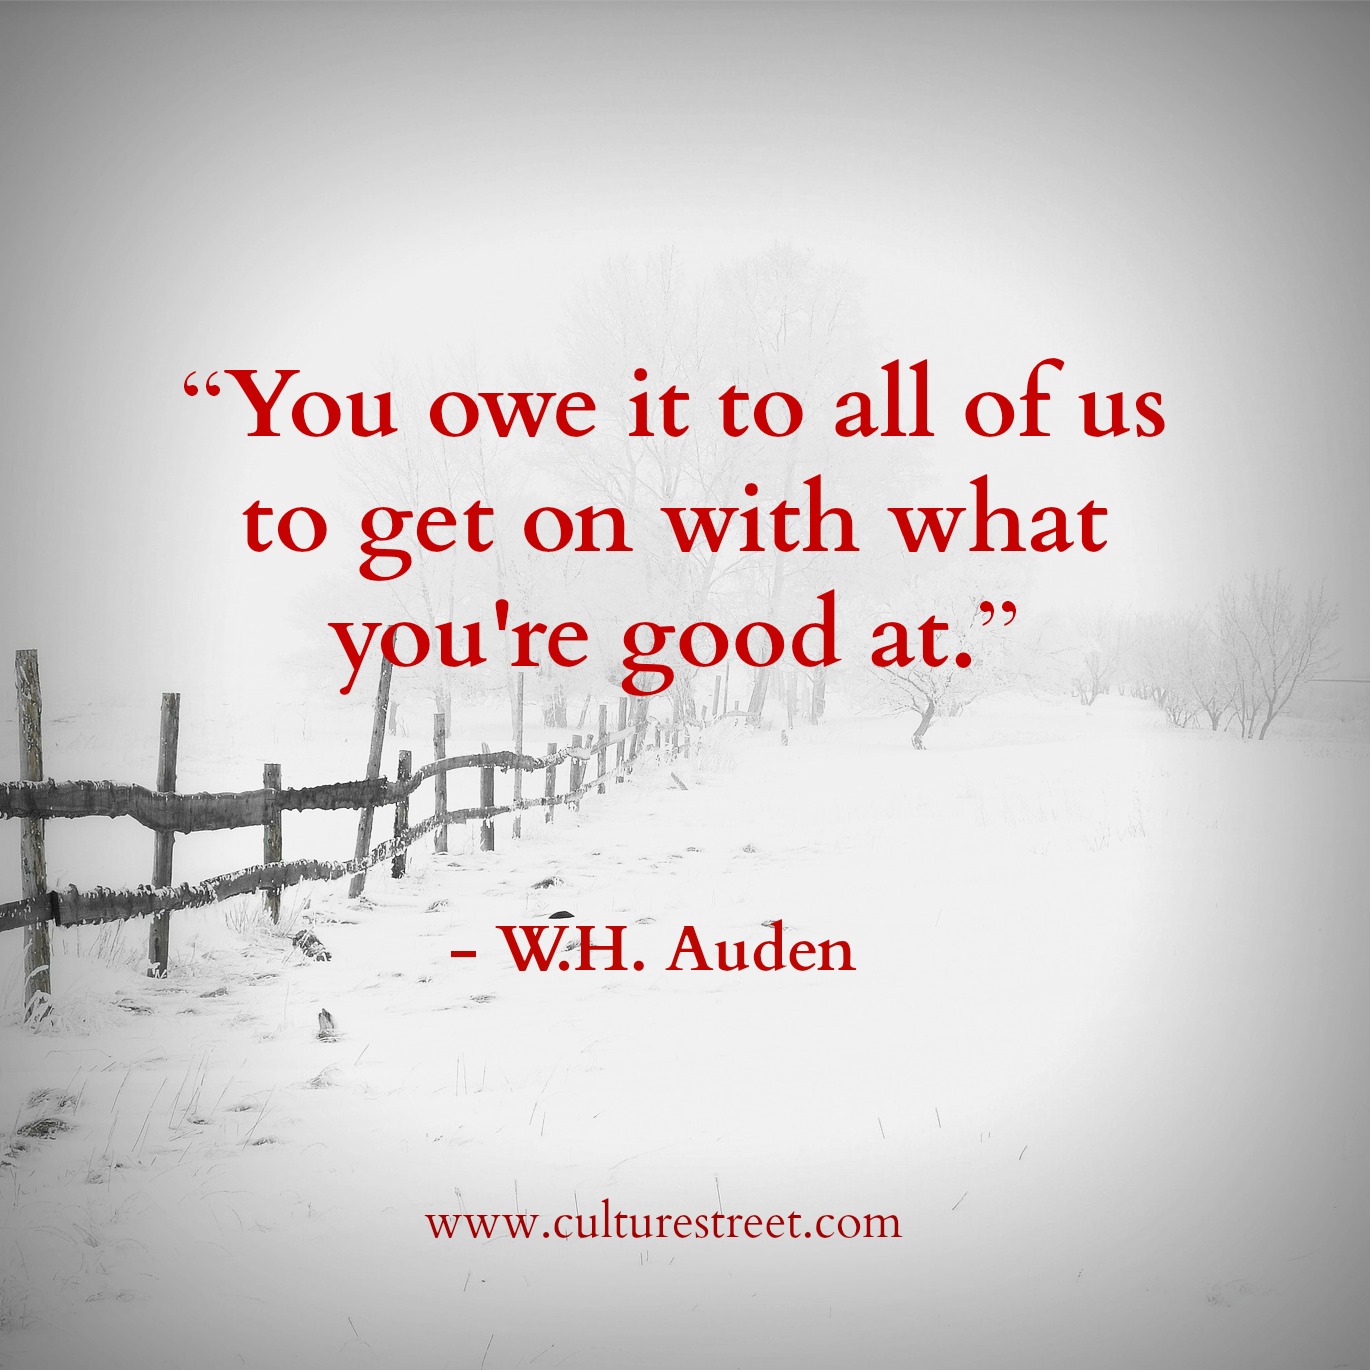 Culture street quote of the day by w h auden